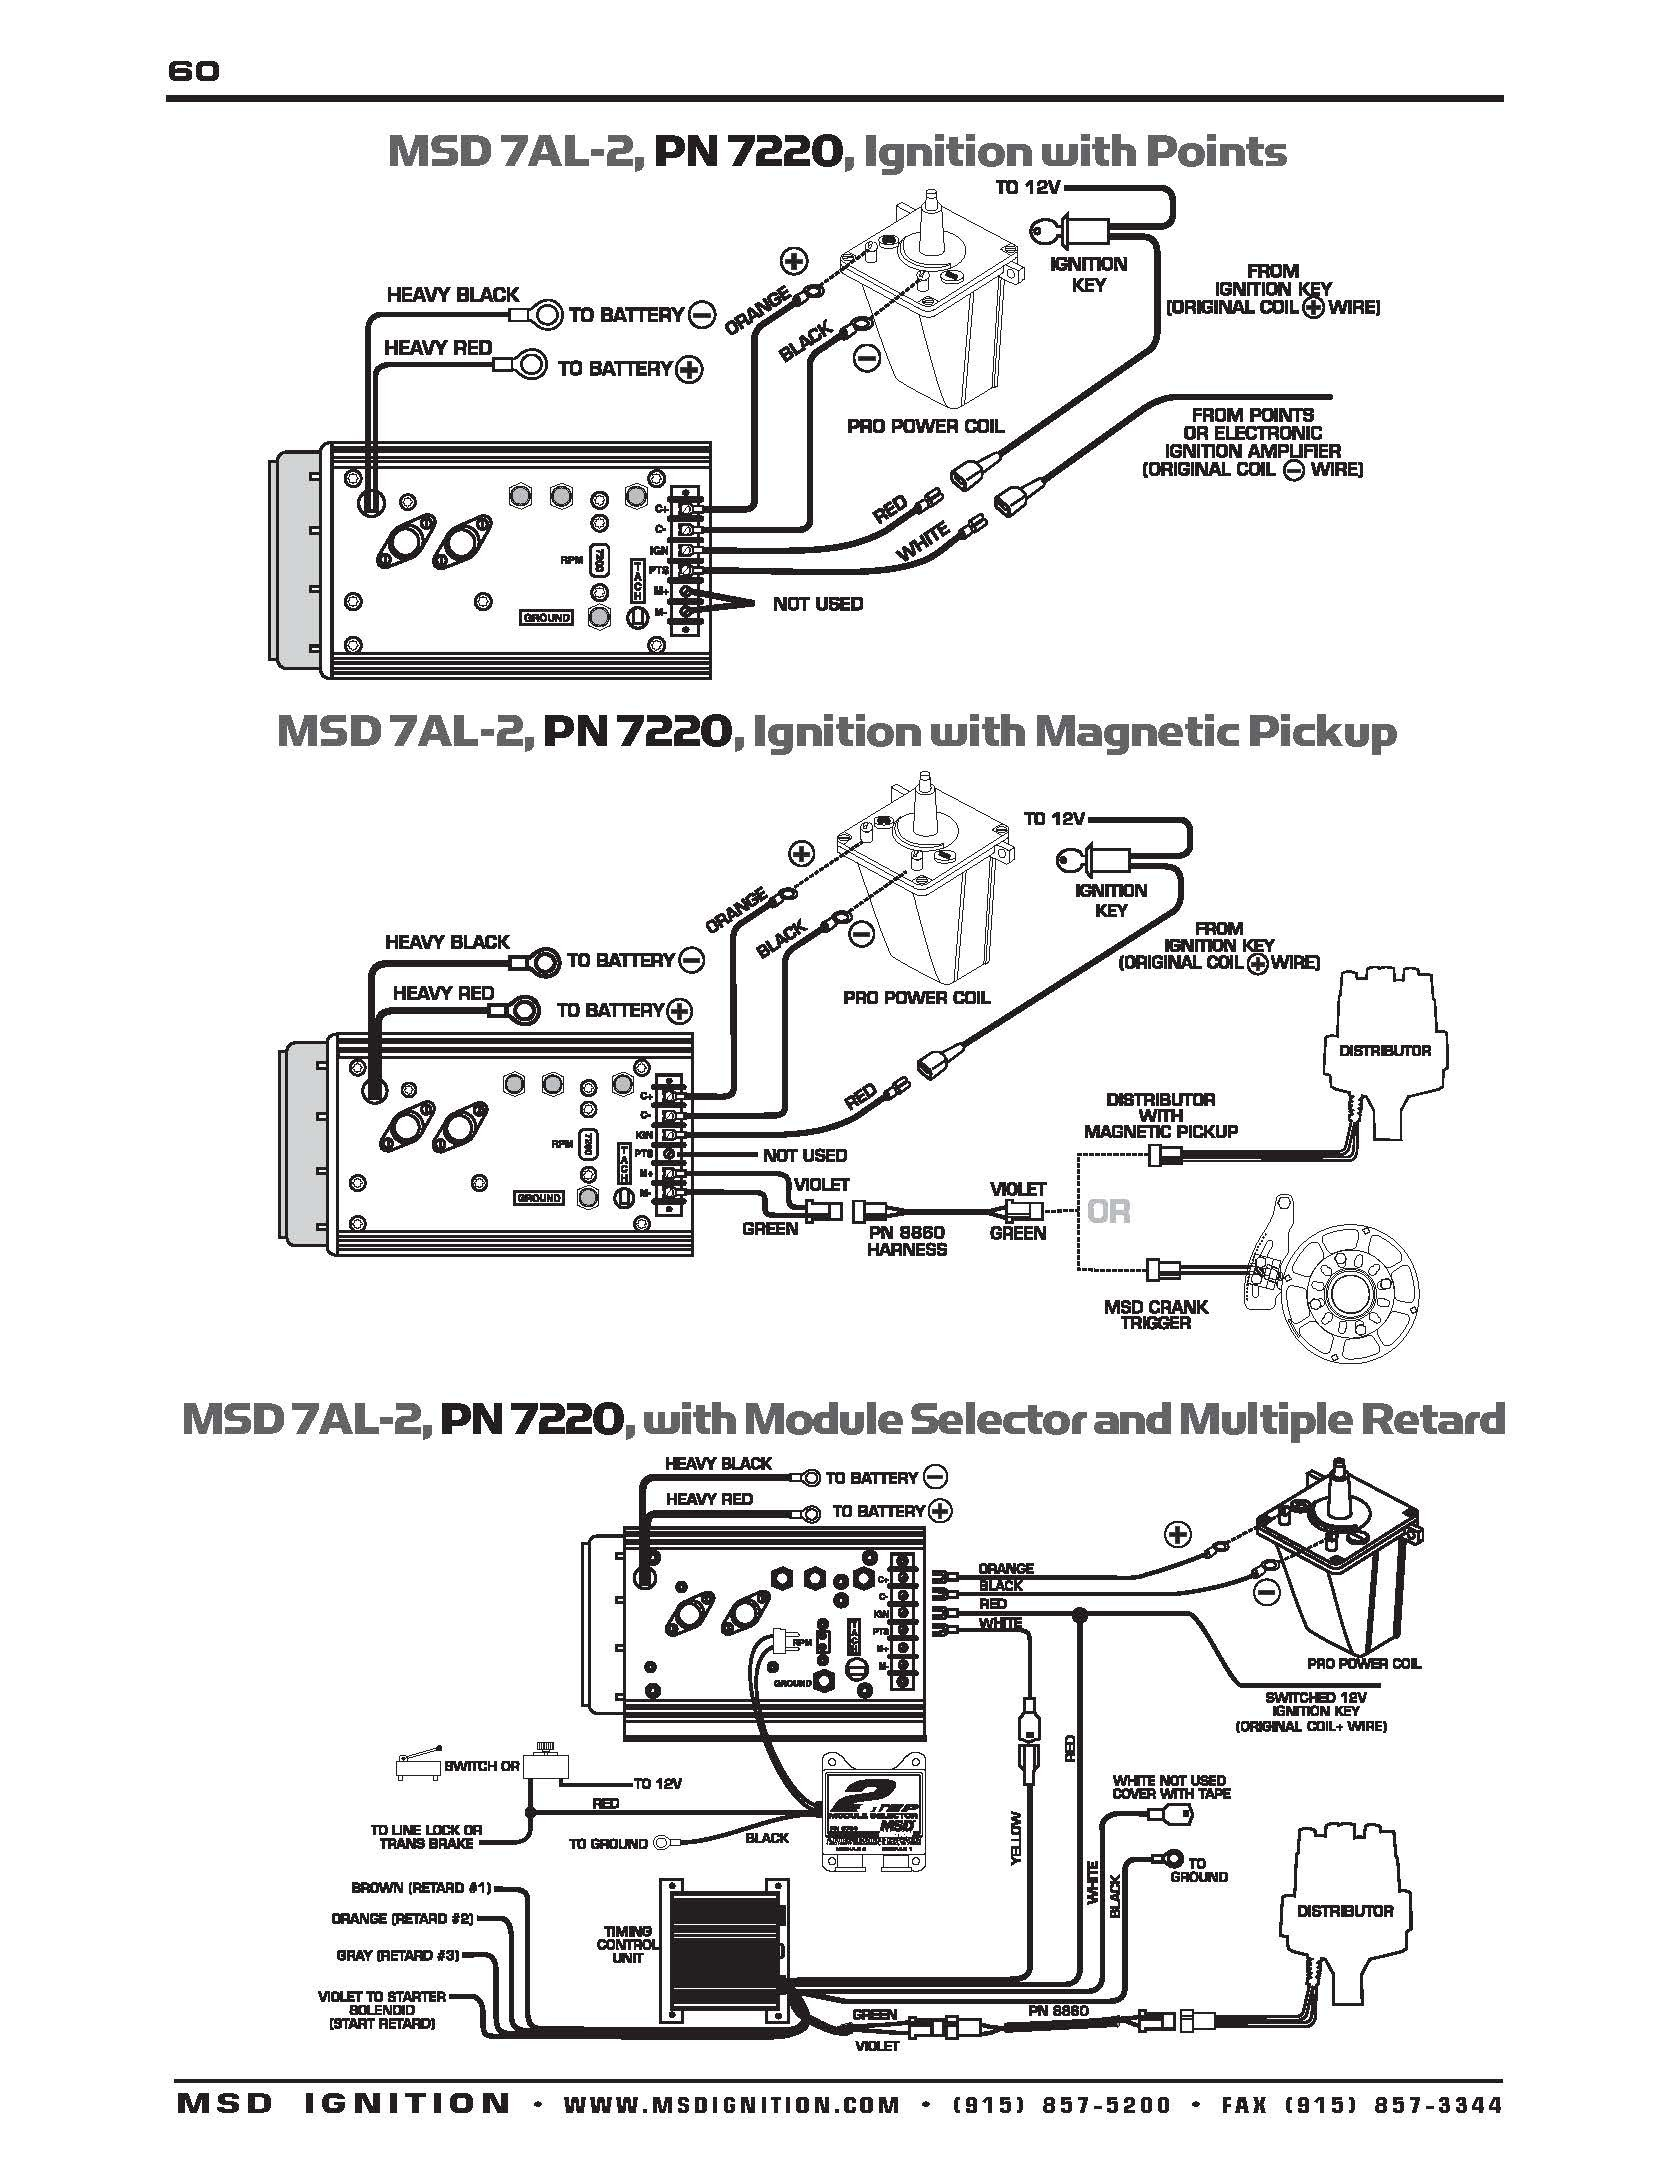 Wiring Diagram for Msd Digital 6 Plus Valid Msd Ignition Wiring Diagrams with Msd Two Step